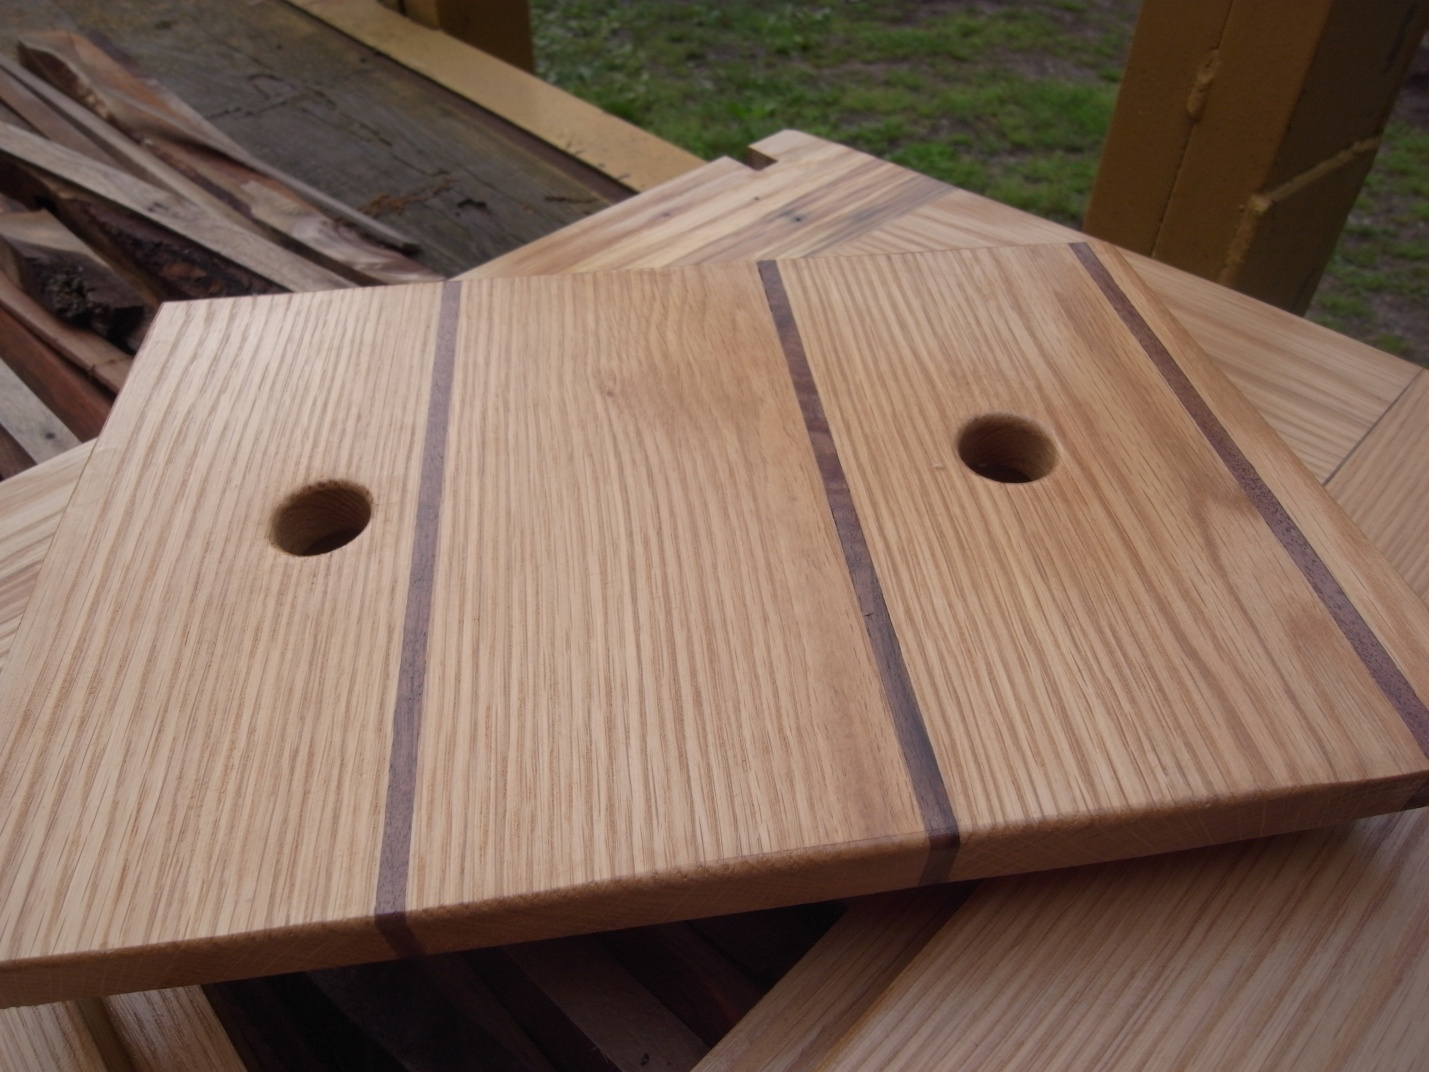 Click image for larger version  Name:walnut and oak.jpg Views:83 Size:410.4 KB ID:61409